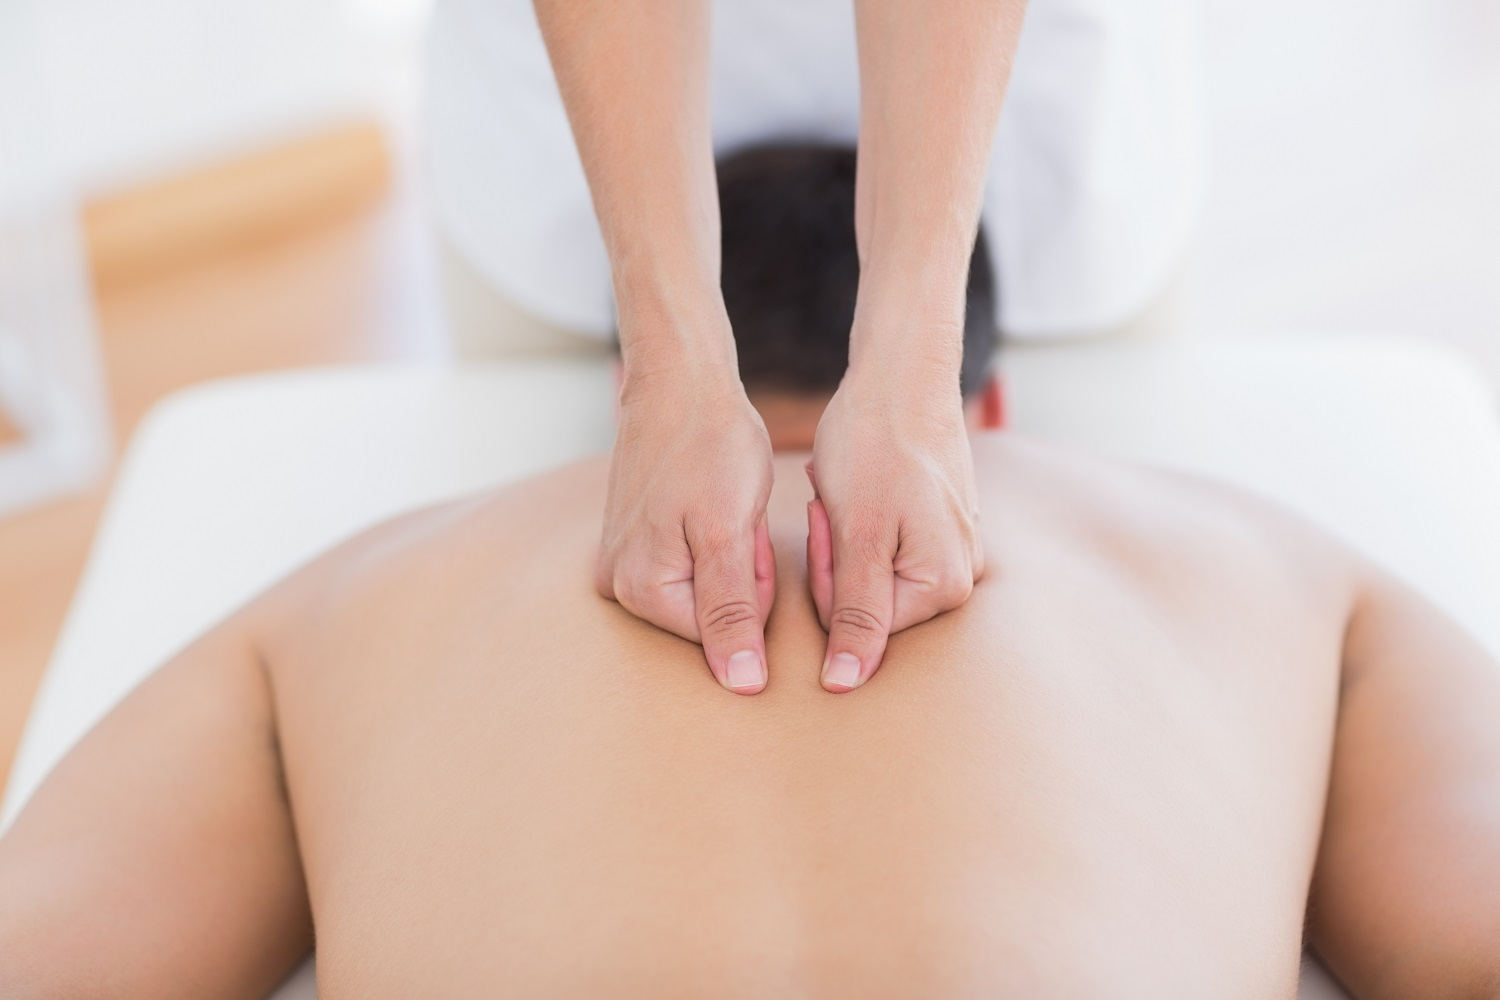 Professional Registered Vaughan Ontario Massage Therapy. High Quality Treatments. Sunstone RMT RE-Define Your Health. Telephone 647-233-2569